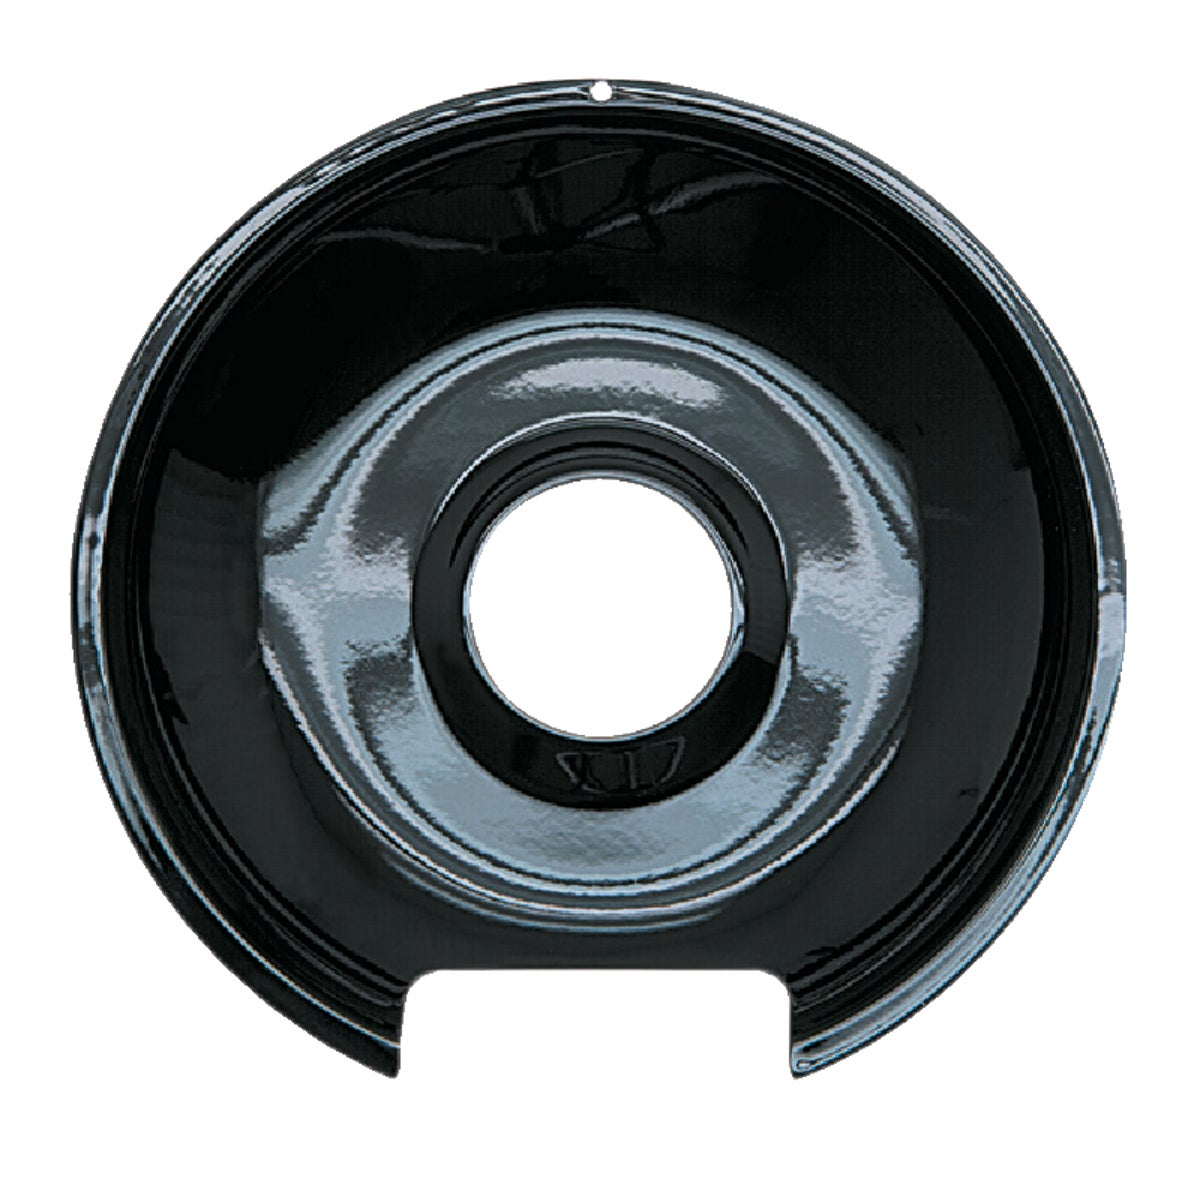 "8"" ELECTRIC DRIP PAN - P-104 by Range Kleen Mfg Inc"